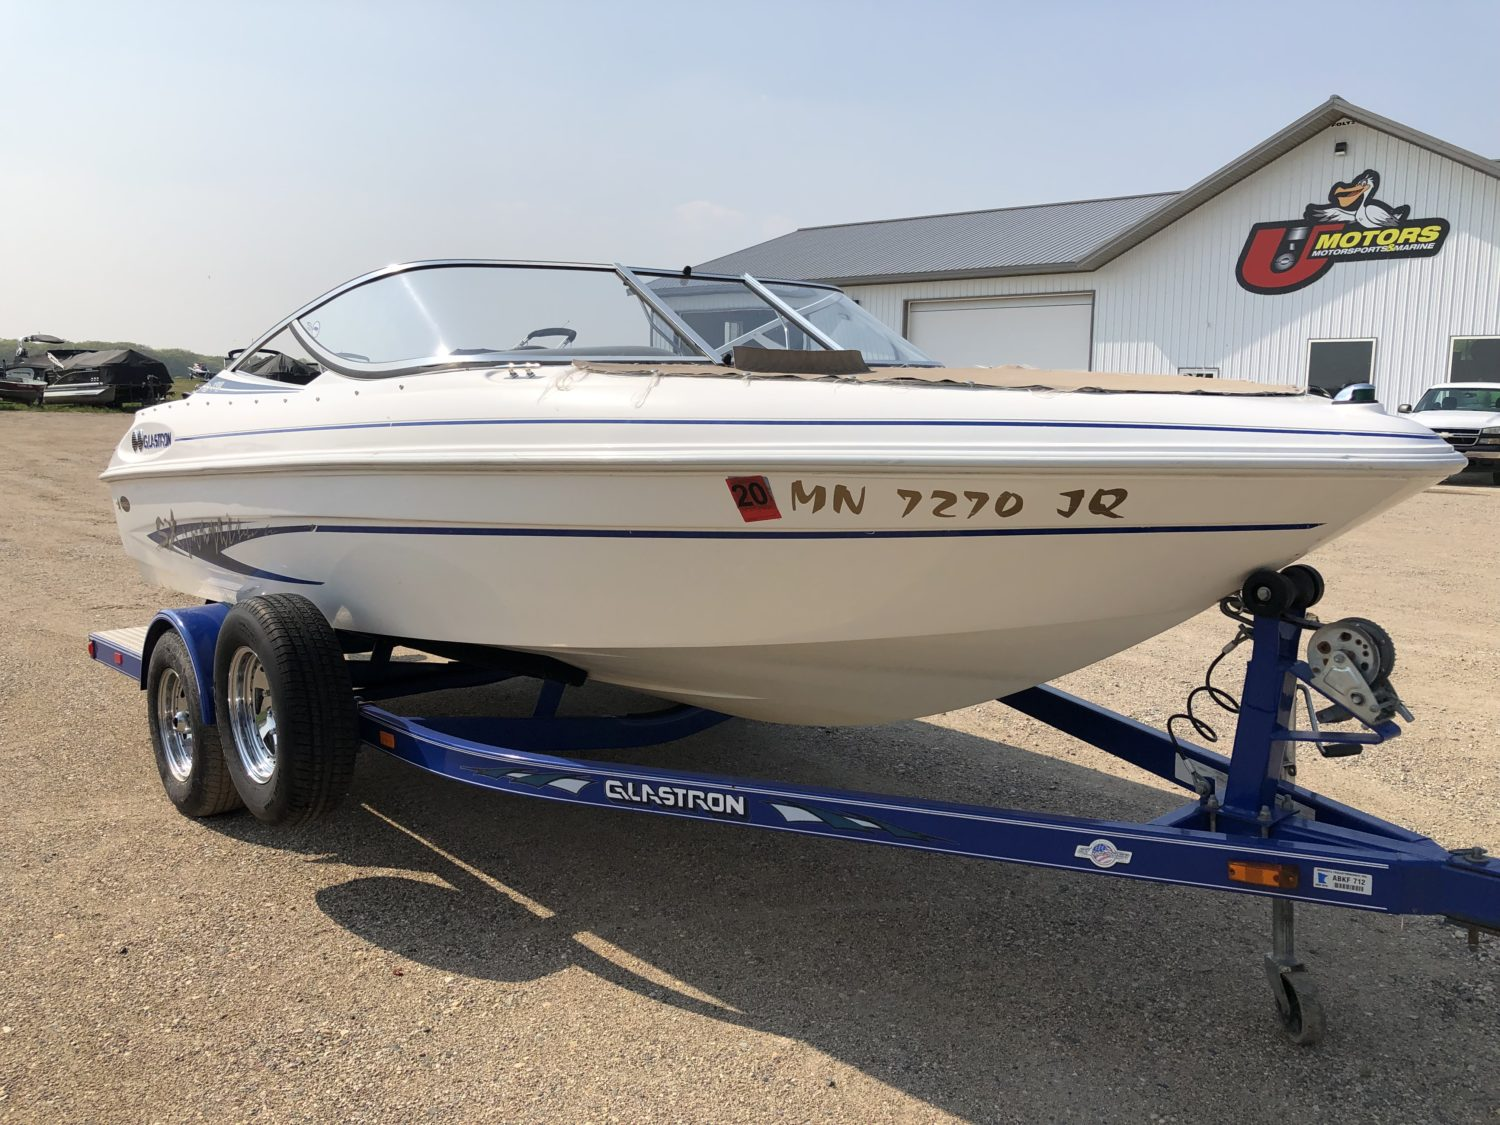 Seen this boat? Please Contact 218-998-8555